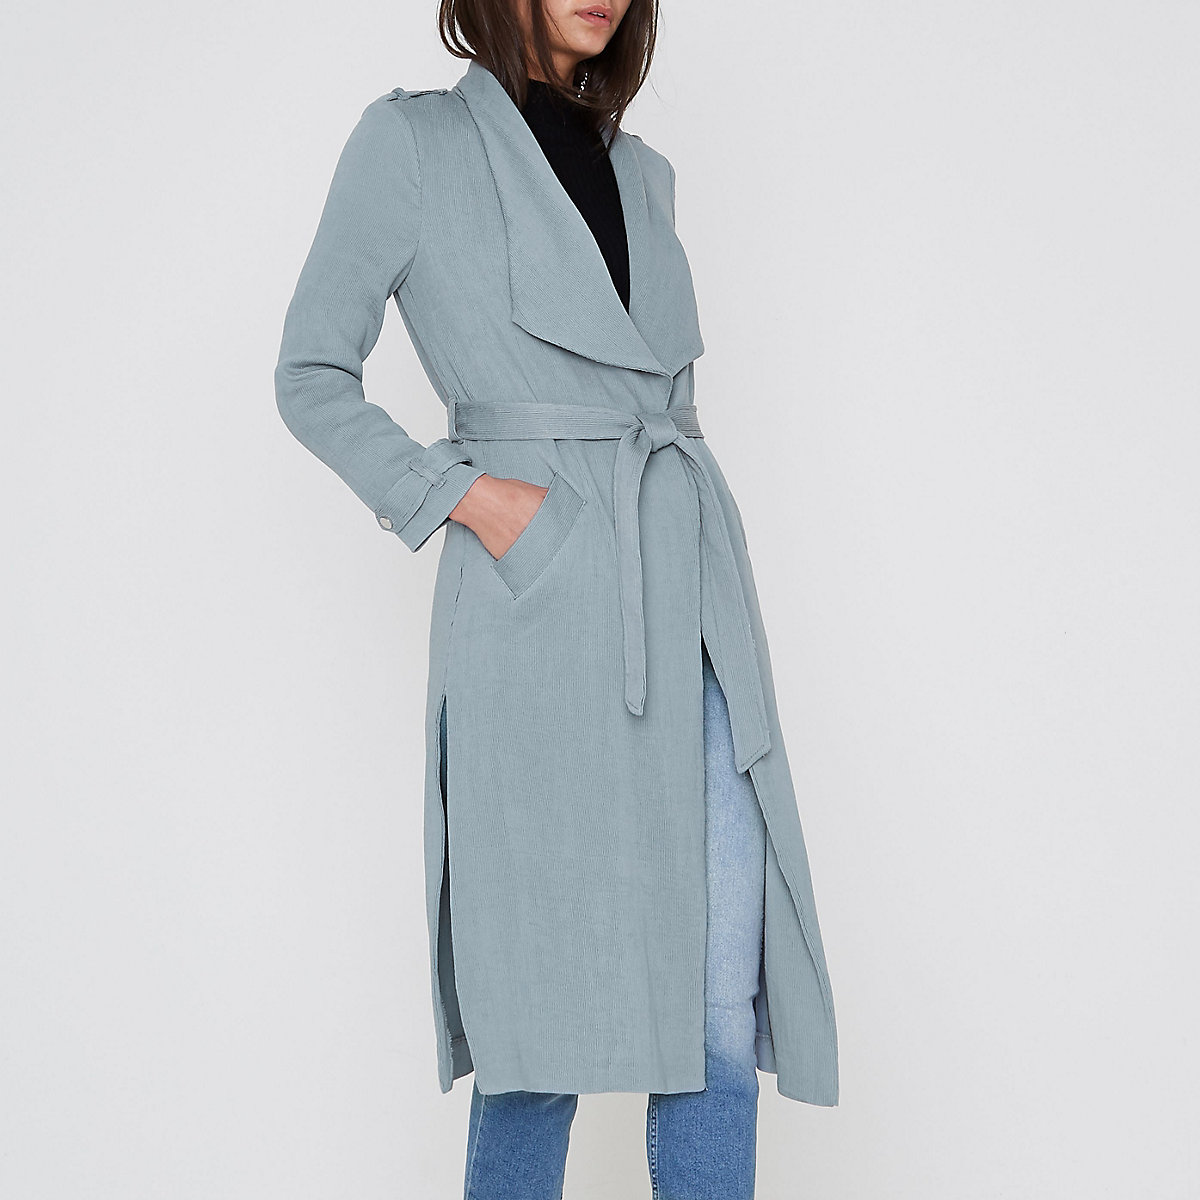 Grey belted duster trench coat